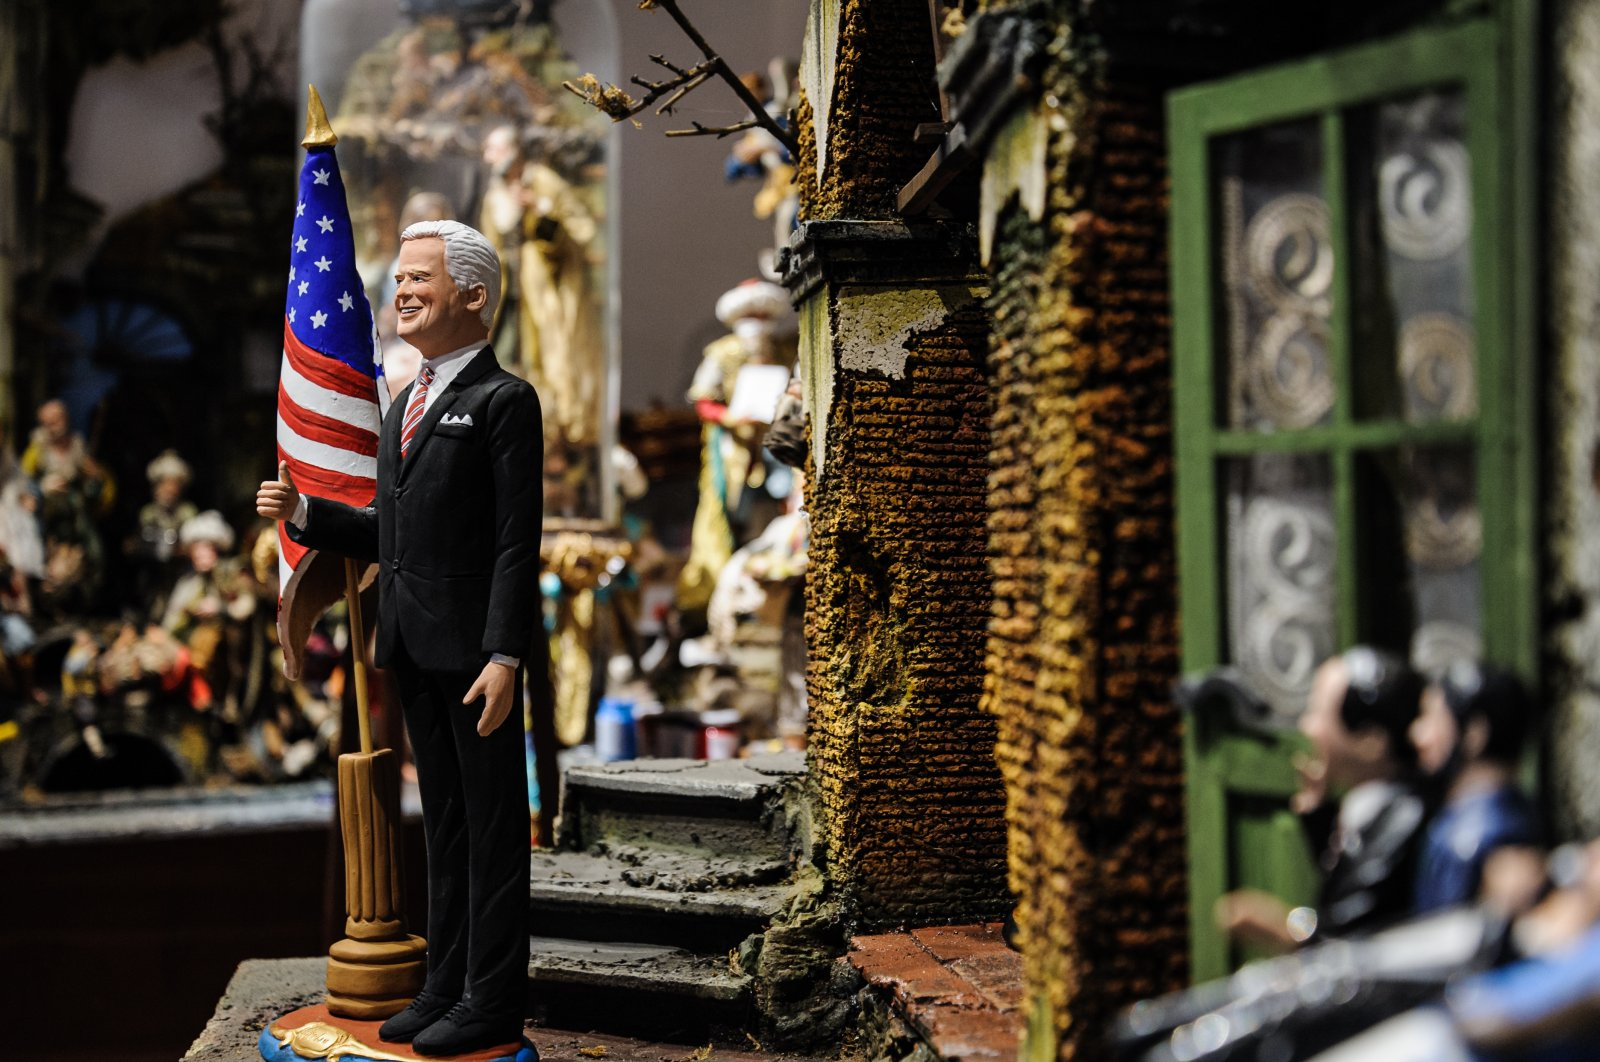 A statuette of U.S. President-elect Joe Biden, produced by master crafters of San Gregorio Armeno, Naples, Italy, Nov. 21, 2020. (Photo by Getty Images)